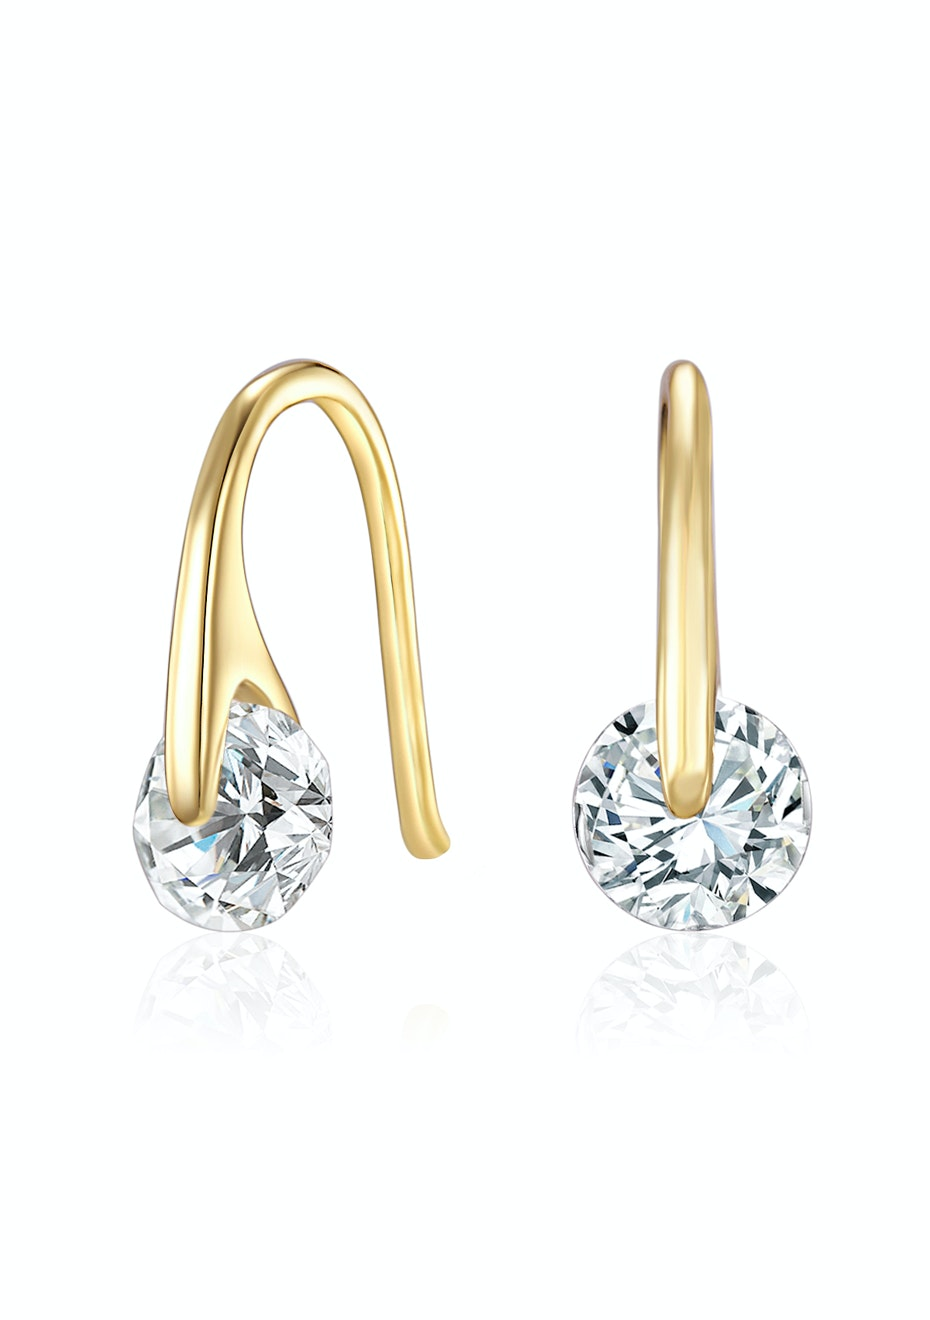 Earrings Embellished with Crystals from Swarovski -G